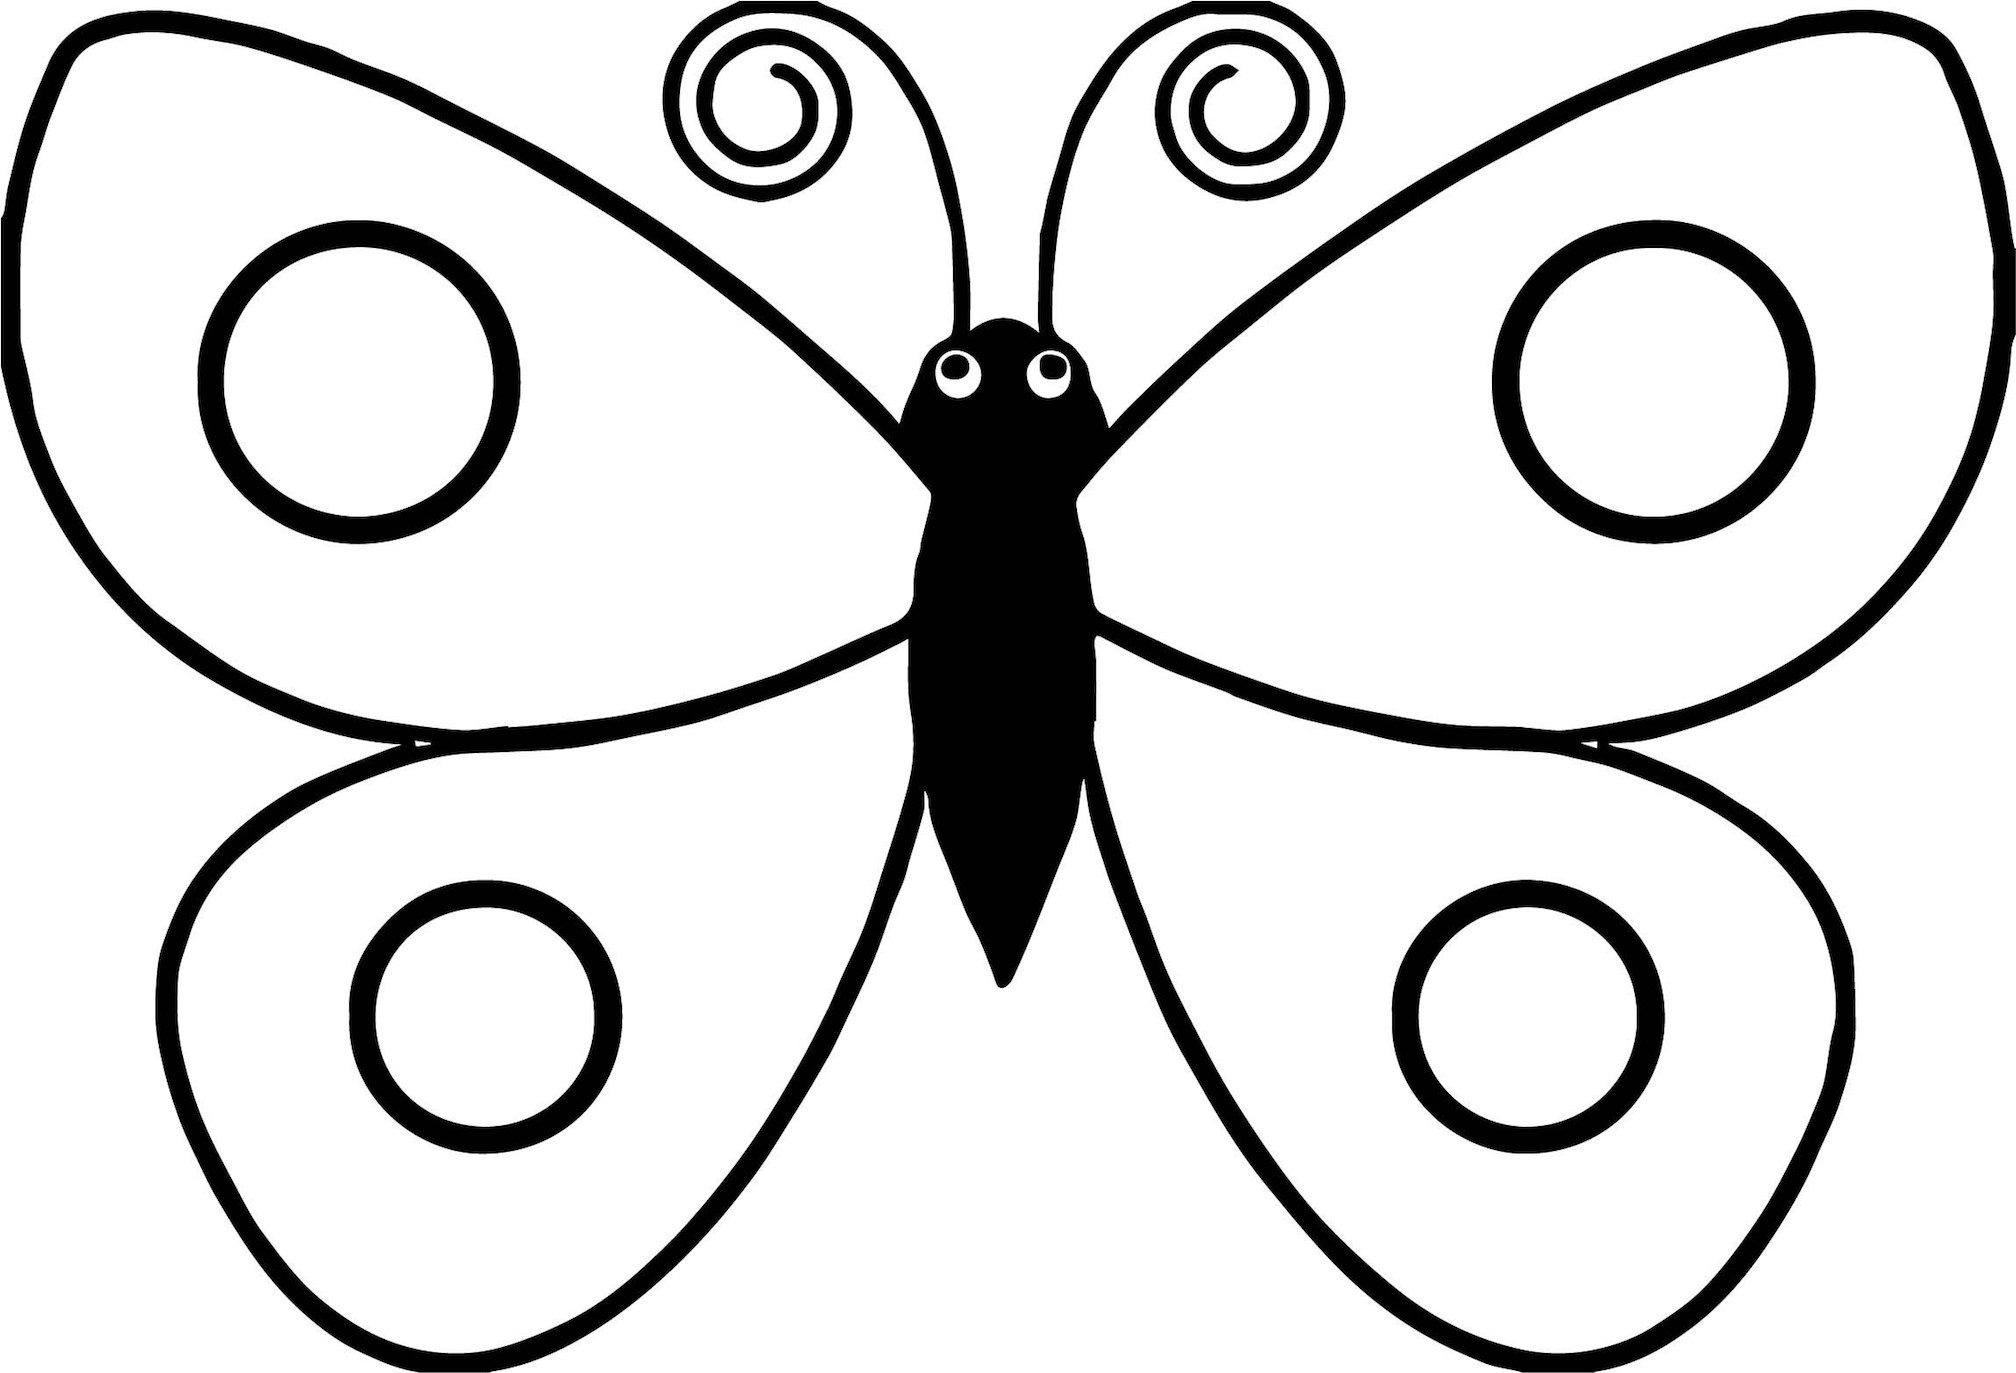 Butterfly Coloring Pages For Kids And Other Top 10 ...